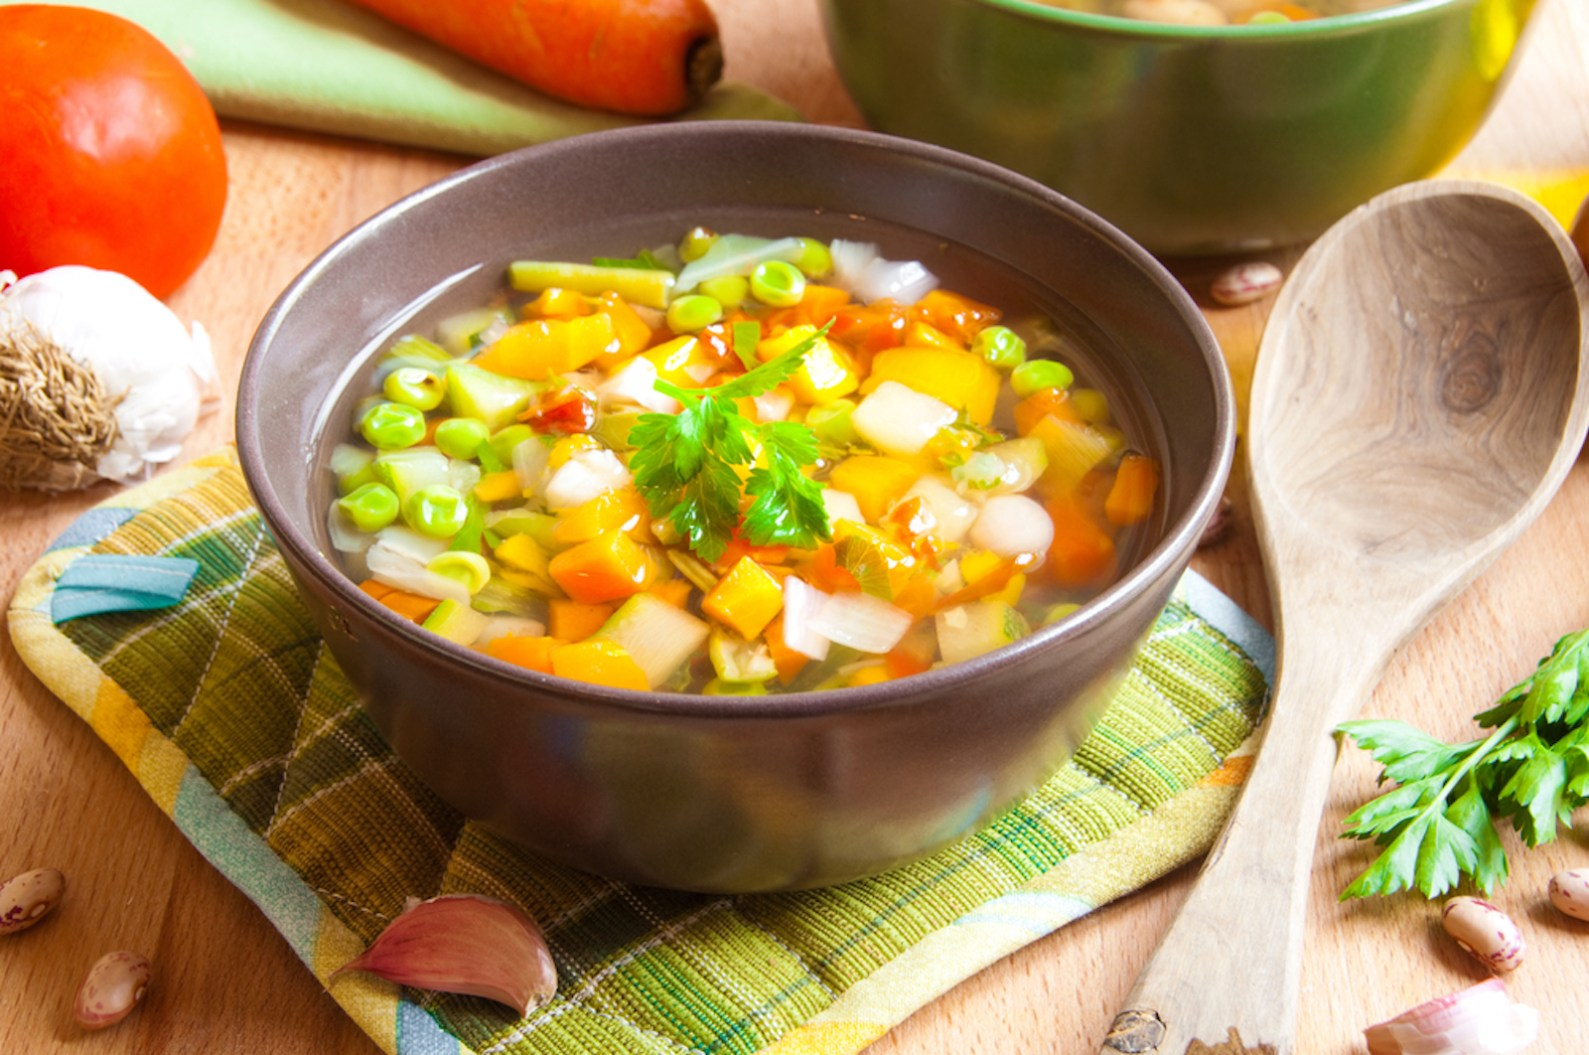 11 Tips For Making Great Vegetable Soups